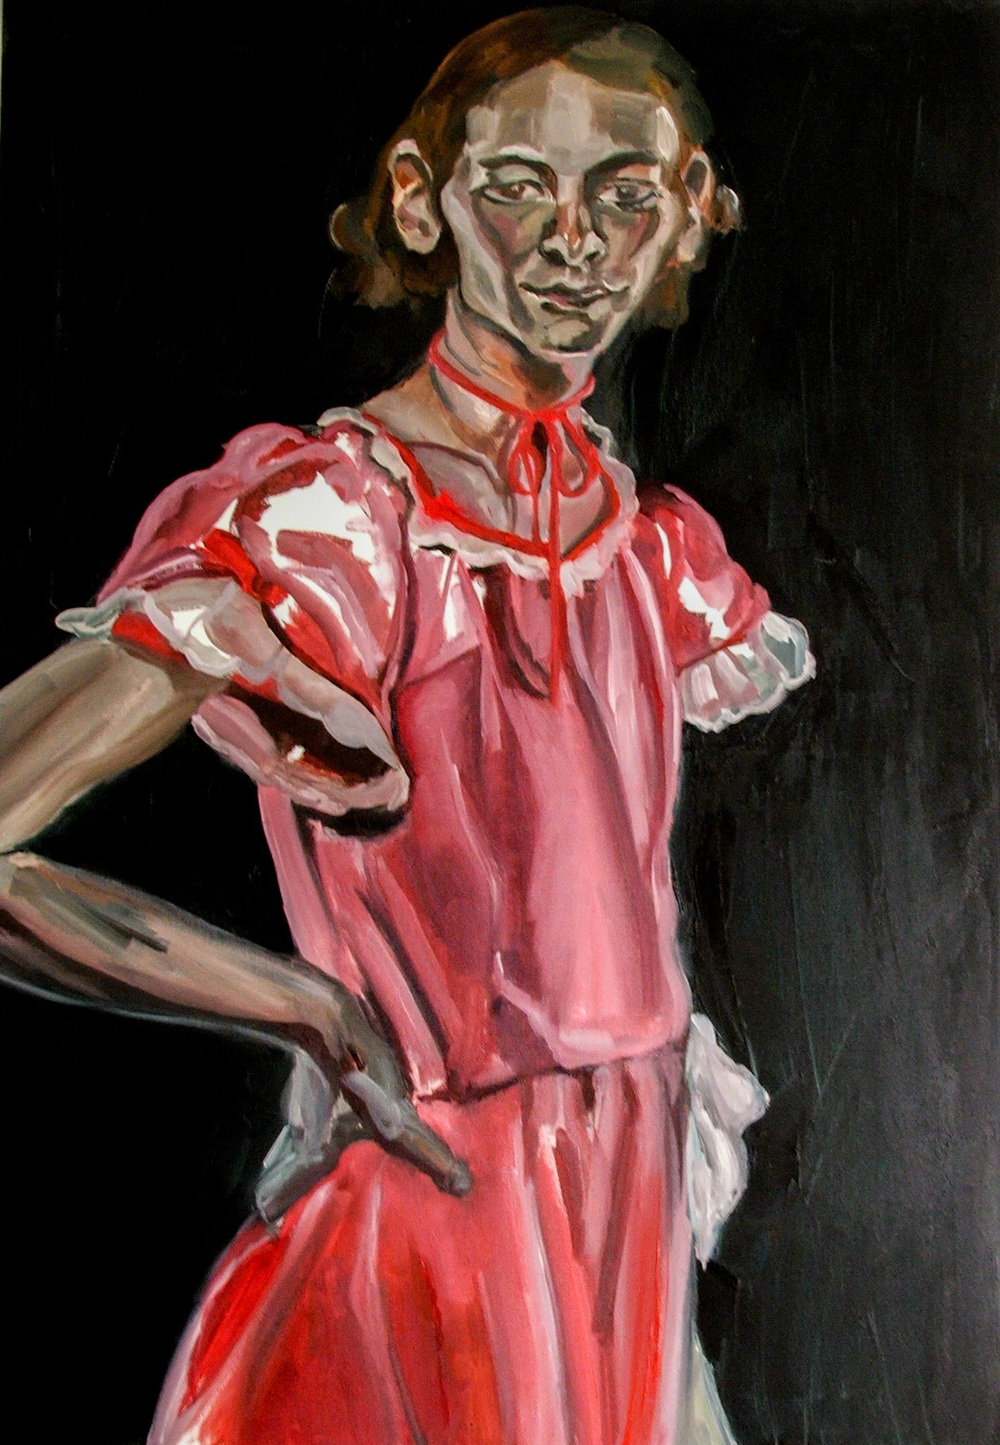 Red riding hood, Oil on canvas, 100X70 cm, 2009